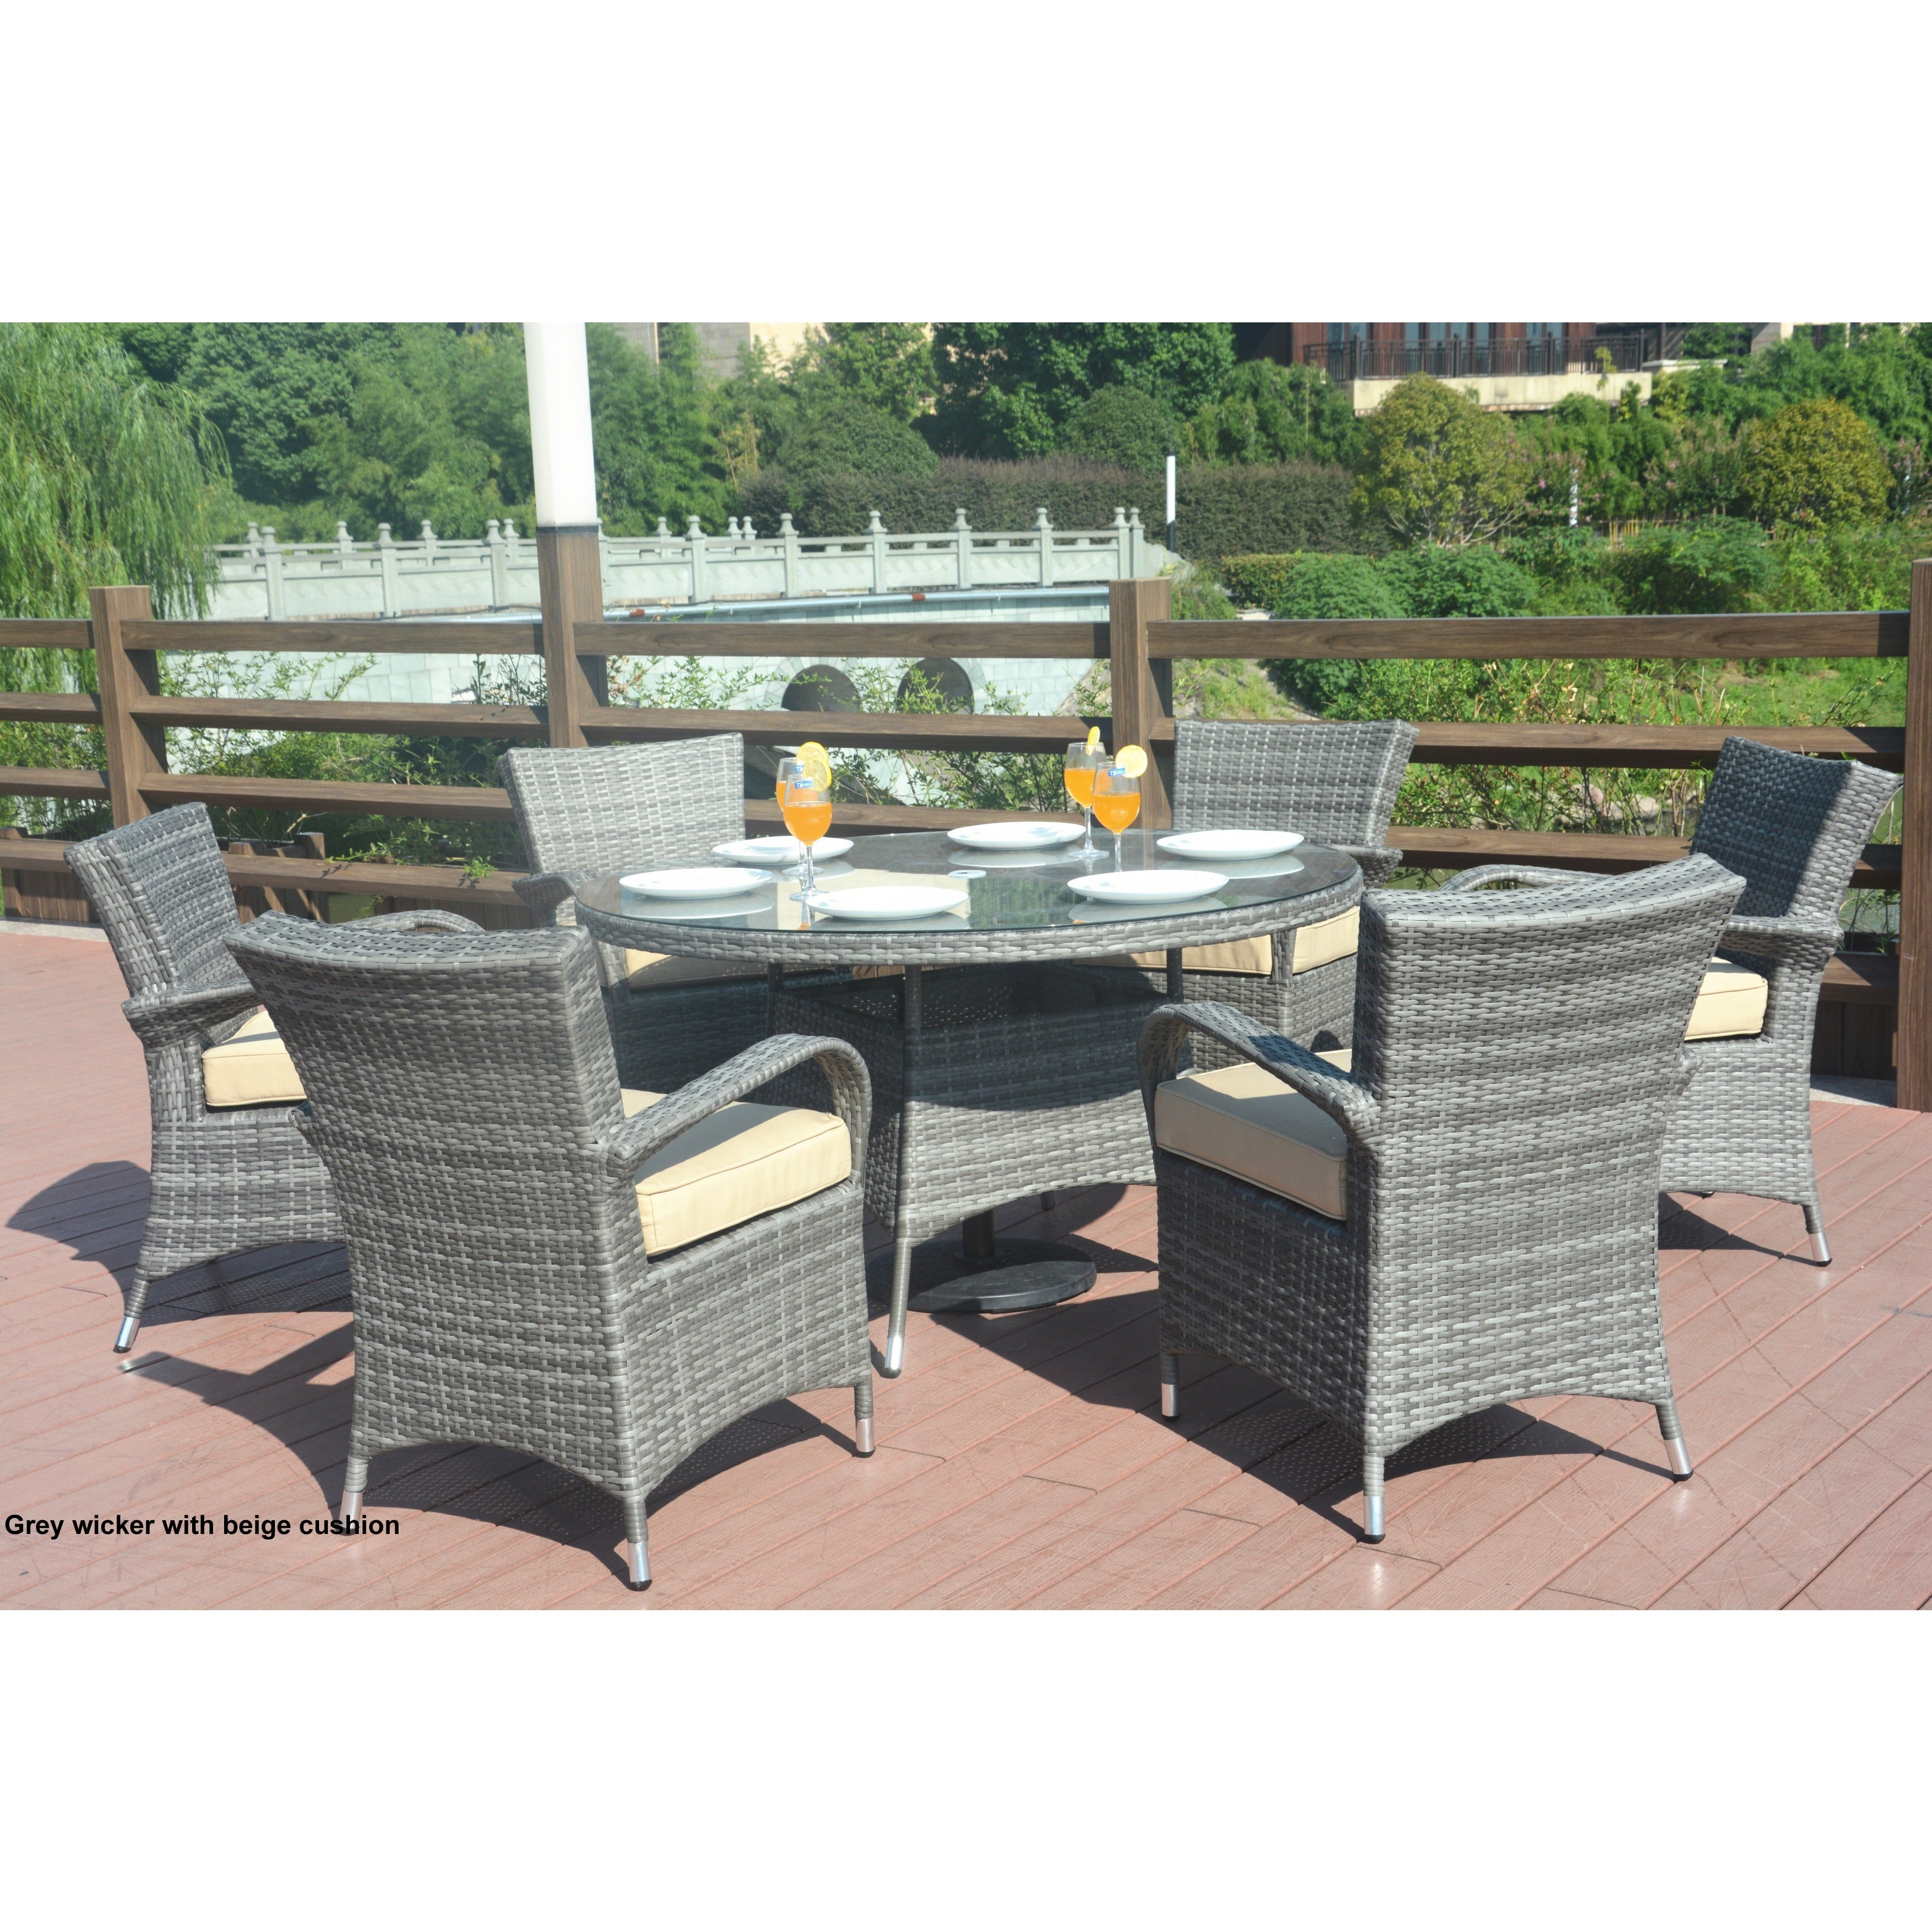 Direct Wicker Eton Chair 7 Piece Rattan Dining Set Ships To Canada 17157024